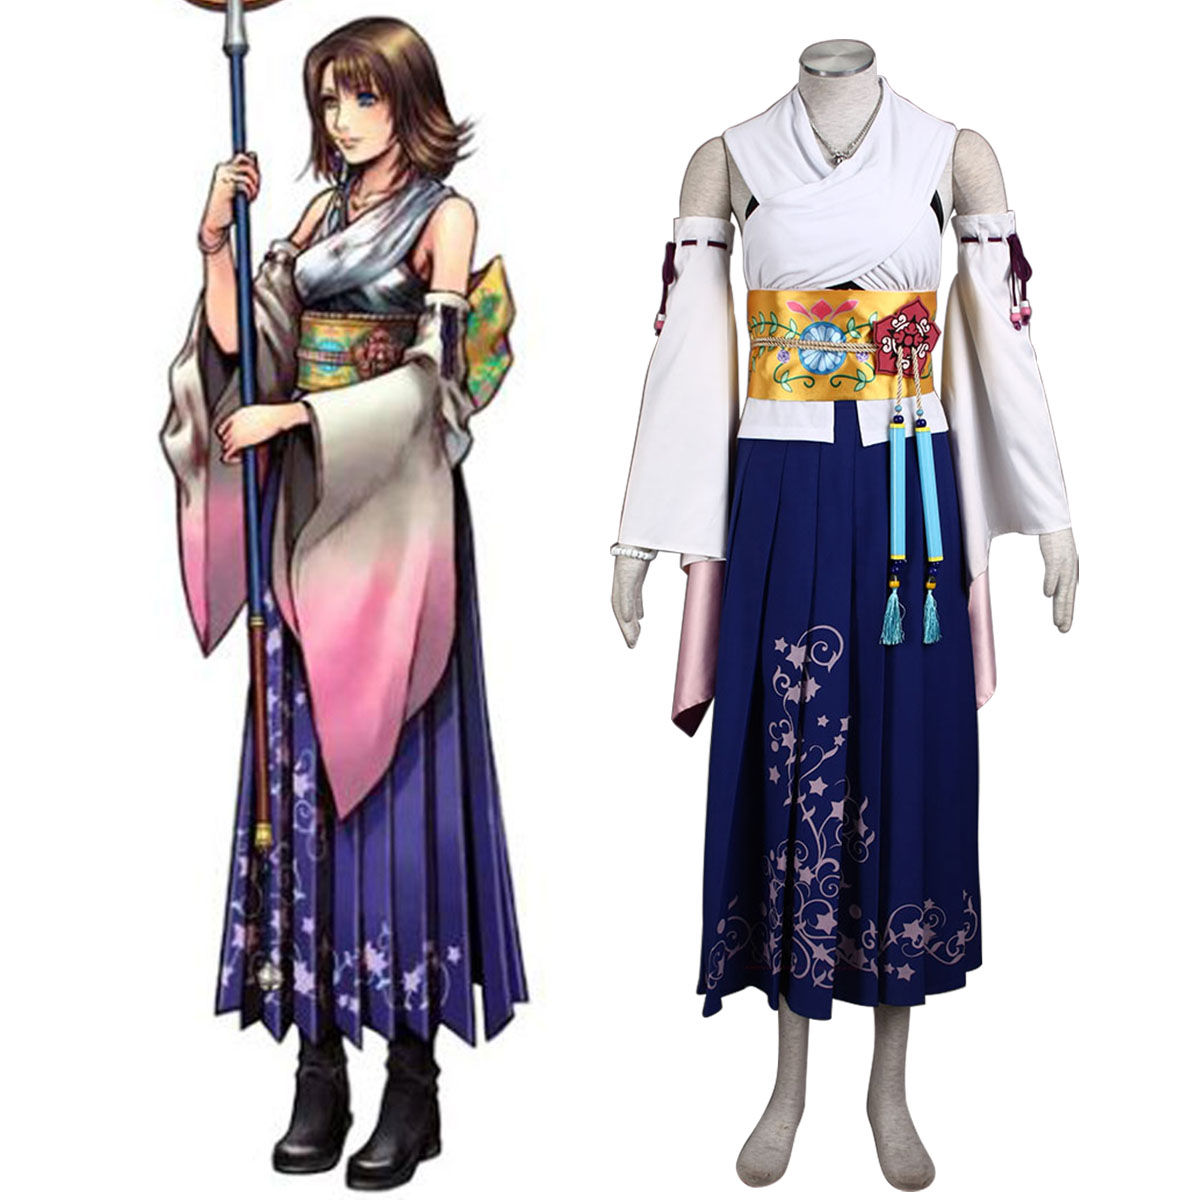 Final Fantasy X Yuna 1 Cosplay Kostym Sverige